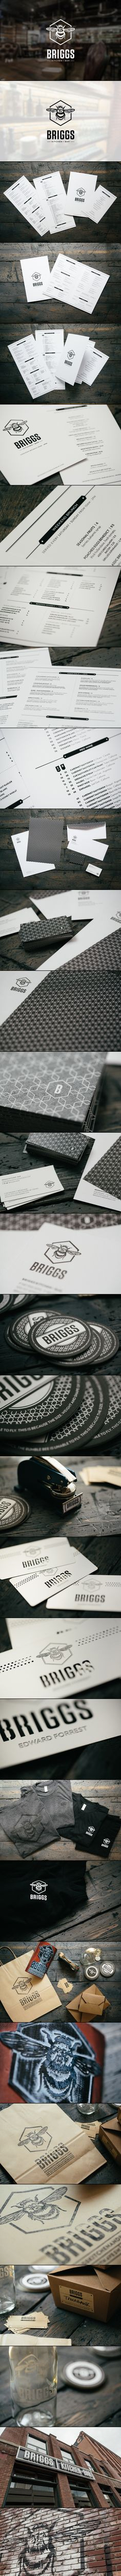 Let's meet at Briggs Kitchen bar for lunch #identity #packaging #branding PD